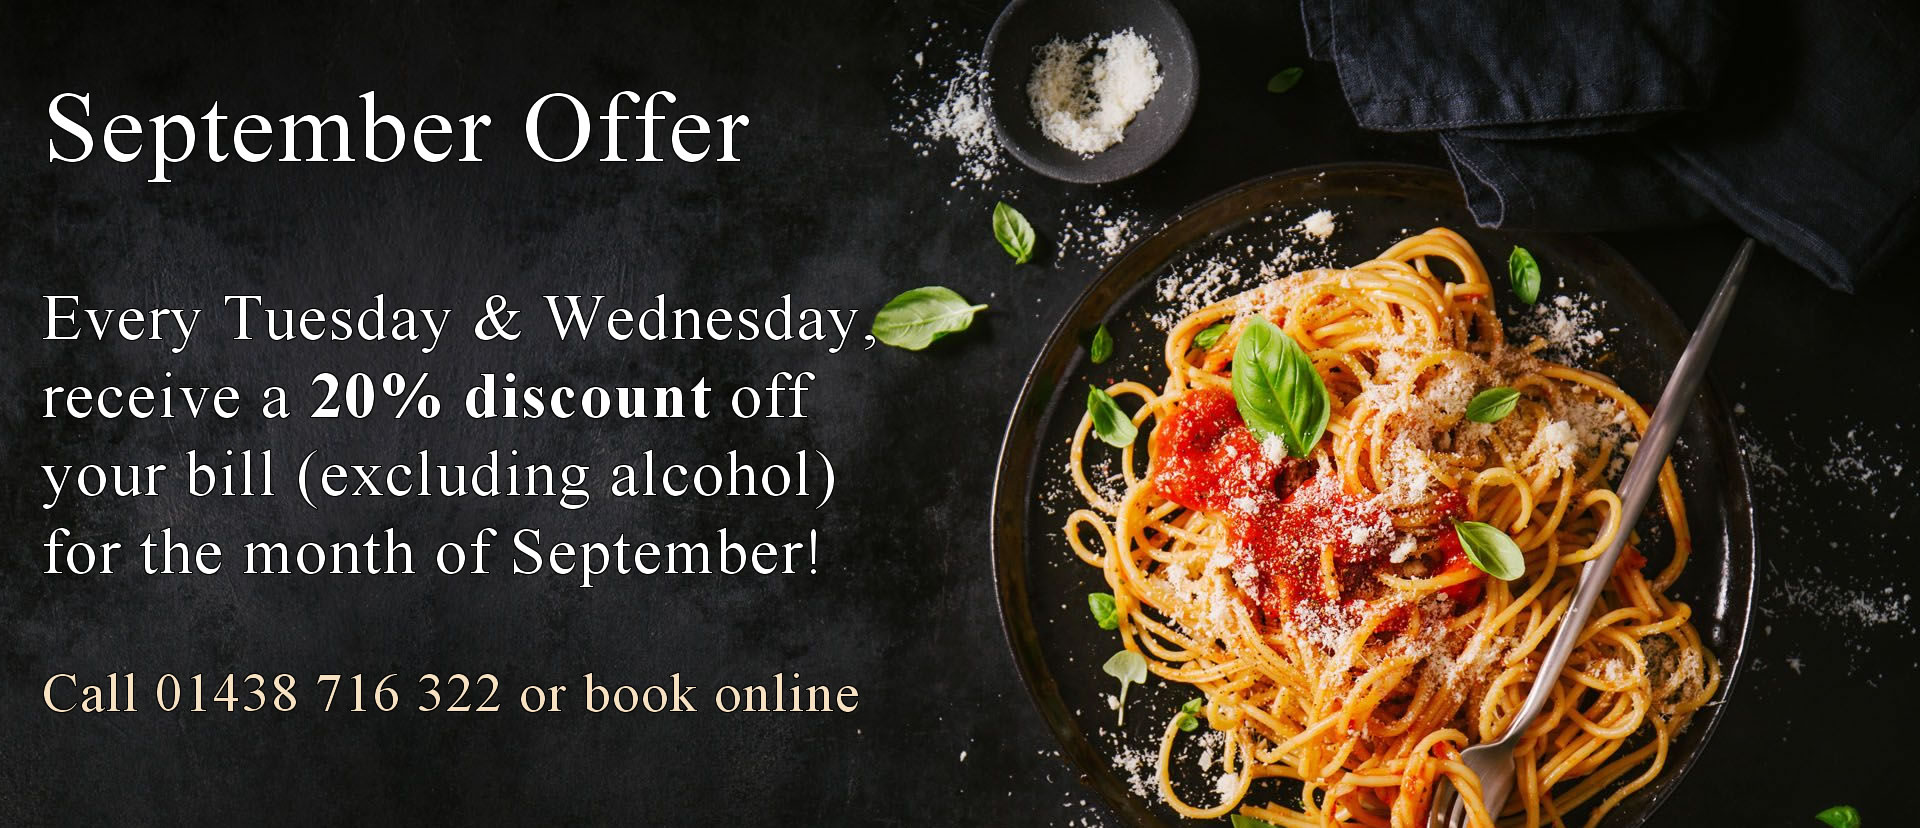 Every Tuesday & Wednesday, receive a 20% discount off your bill (excluding alcohol) for the month of September!